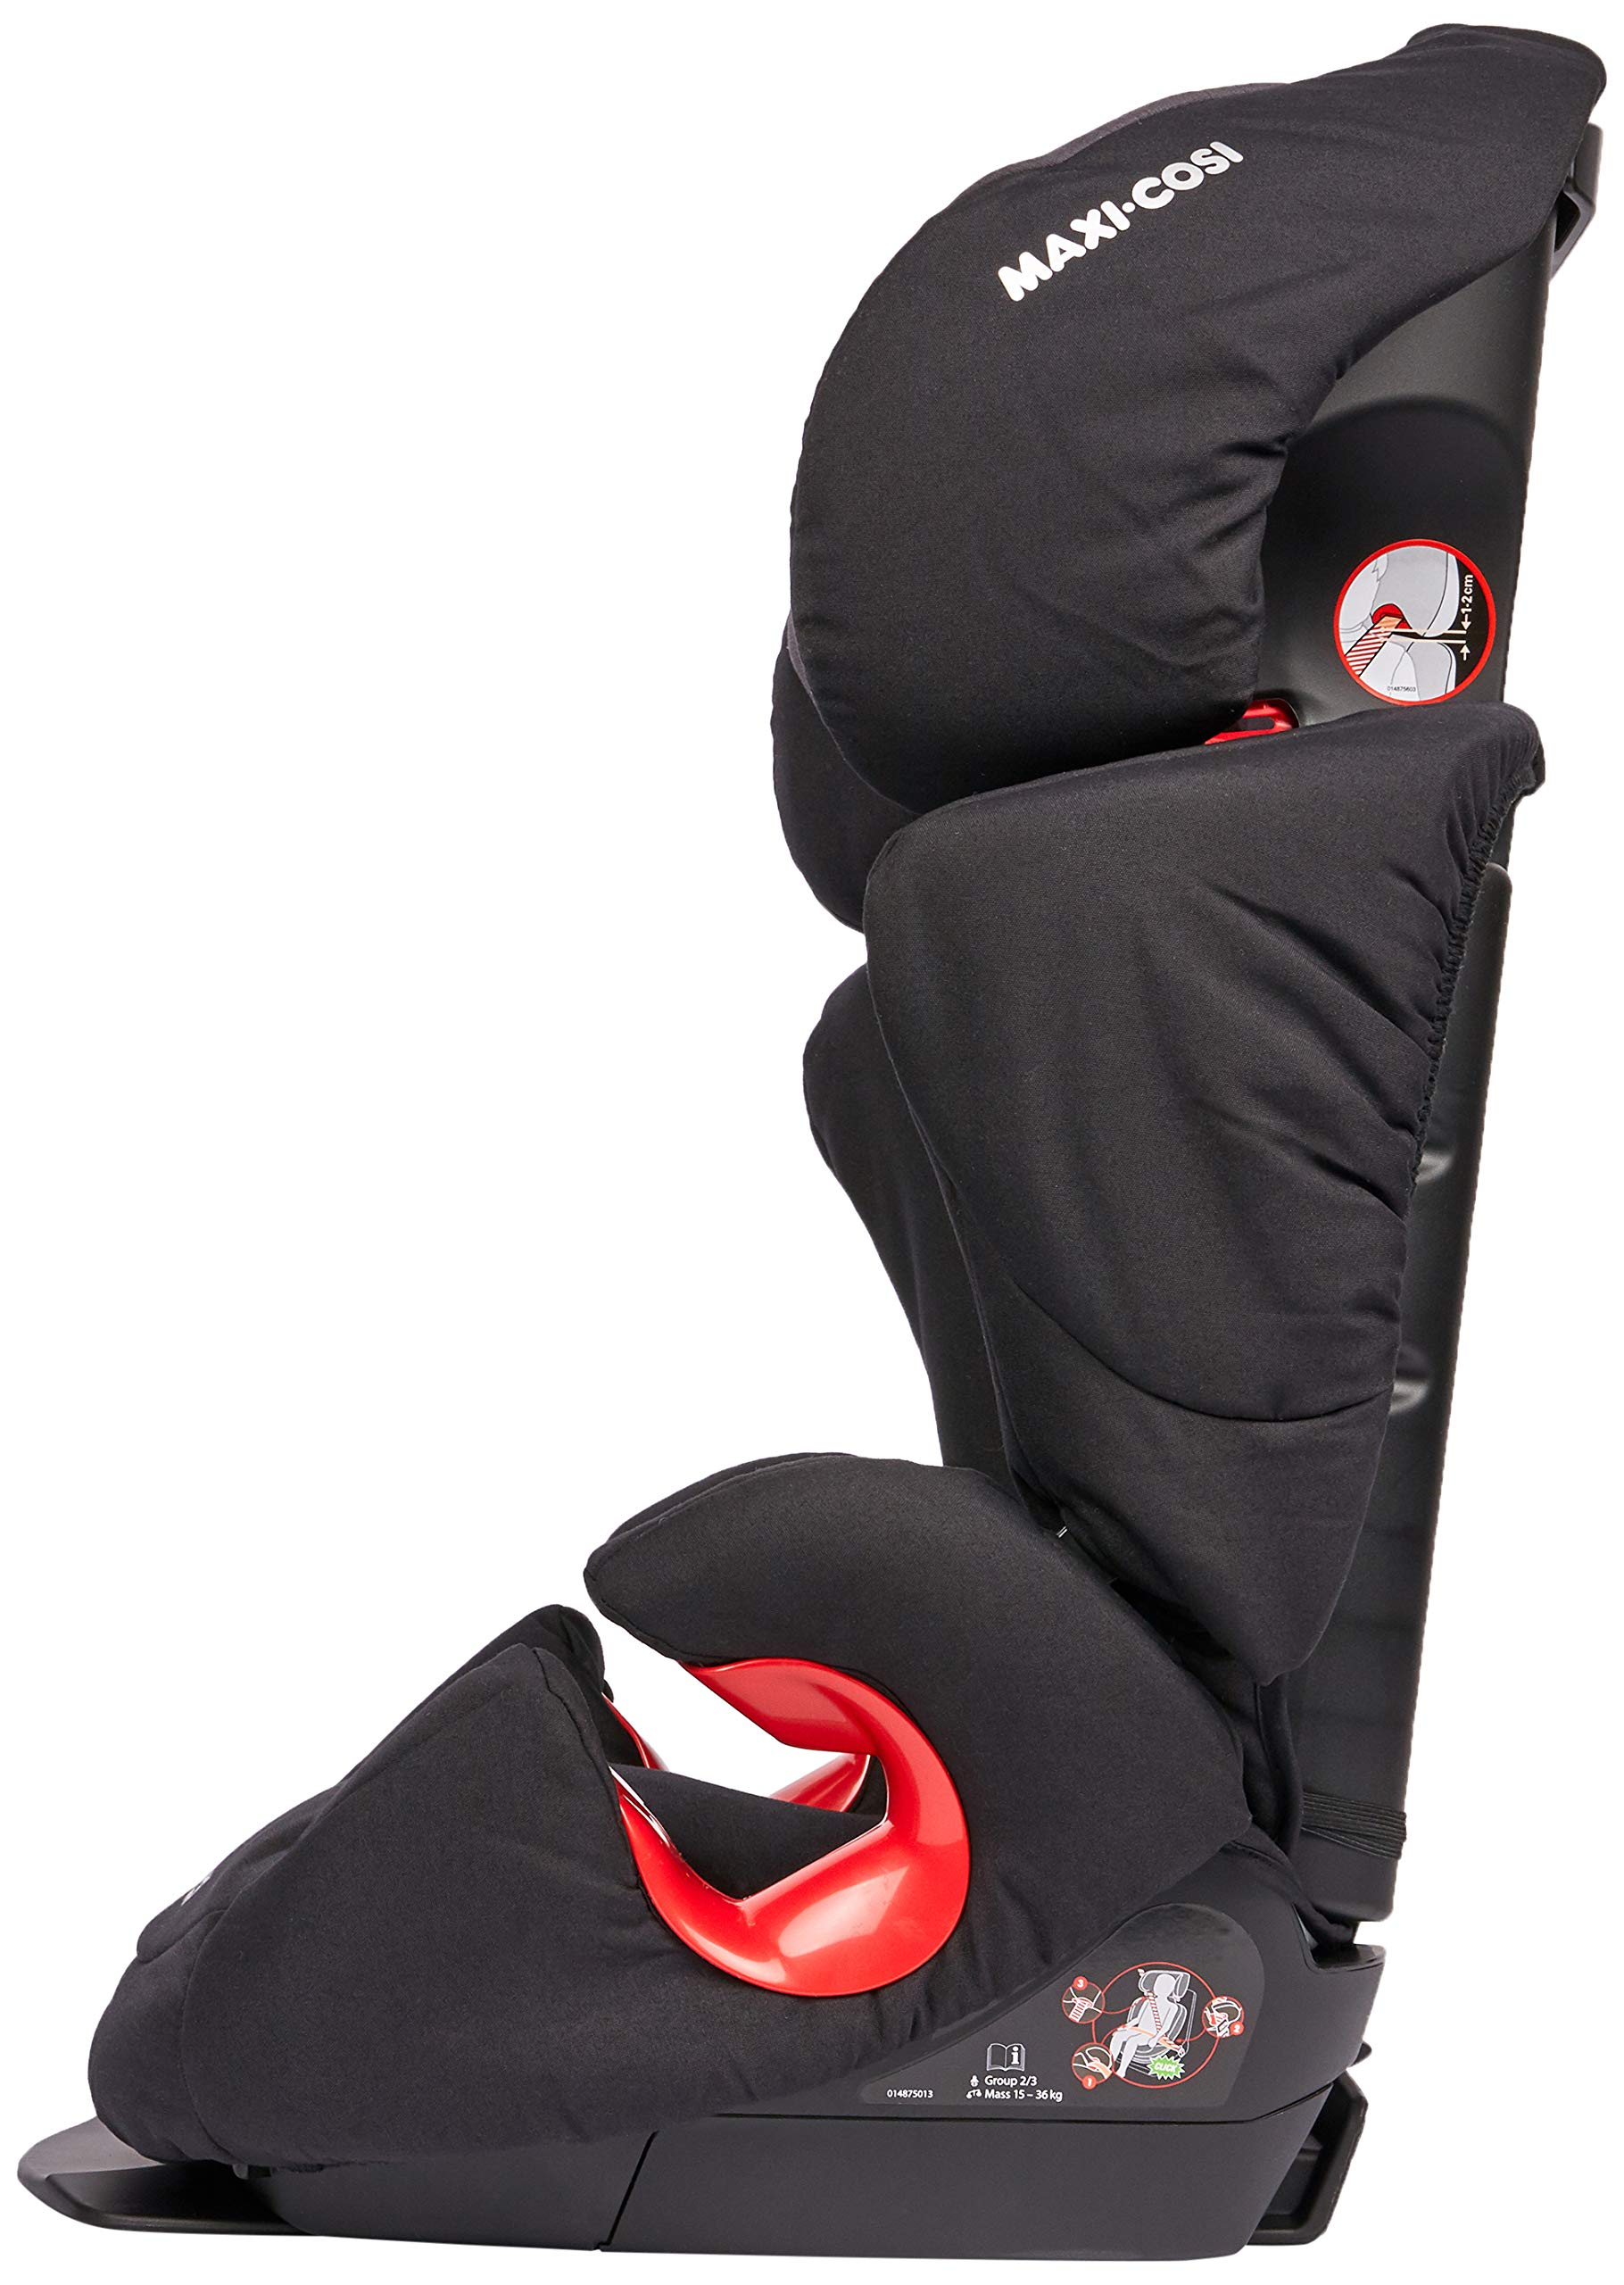 Maxi-Cosi Rodi AirProtect Child Car Seat, Lightweight Highback Booster, 3.5-12 Years, 15-36 kg, Frequency Black Maxi-Cosi Child car seat, suitable from 3.5 to 12 years (15 - 36kg) Easily install this safe car seat with a 3-point seat belt and attach the anchorage point in the head rest through your cars head rest Patented air protect technology in headrest reduces the risk of head and neck injuries up to 20 percent 5